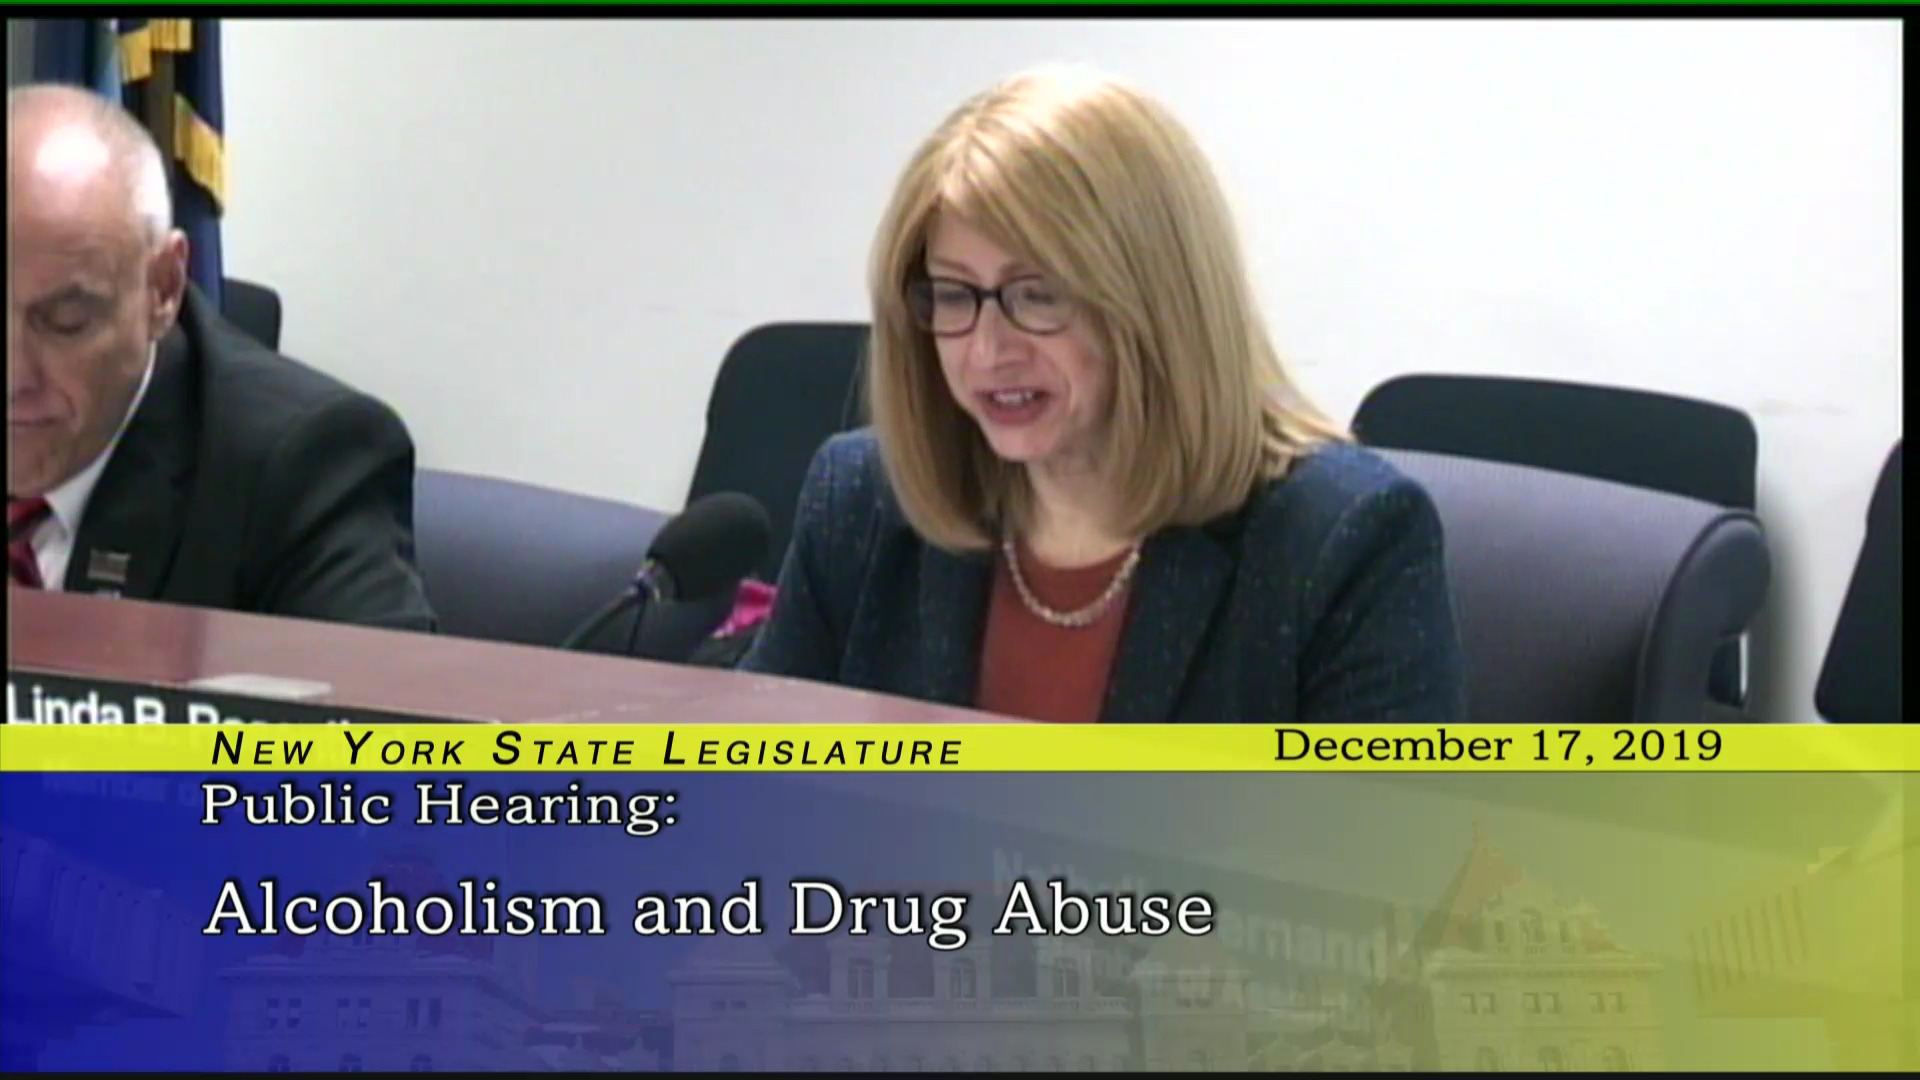 Public Hearing on Alcoholism and Drug Abuse (2)